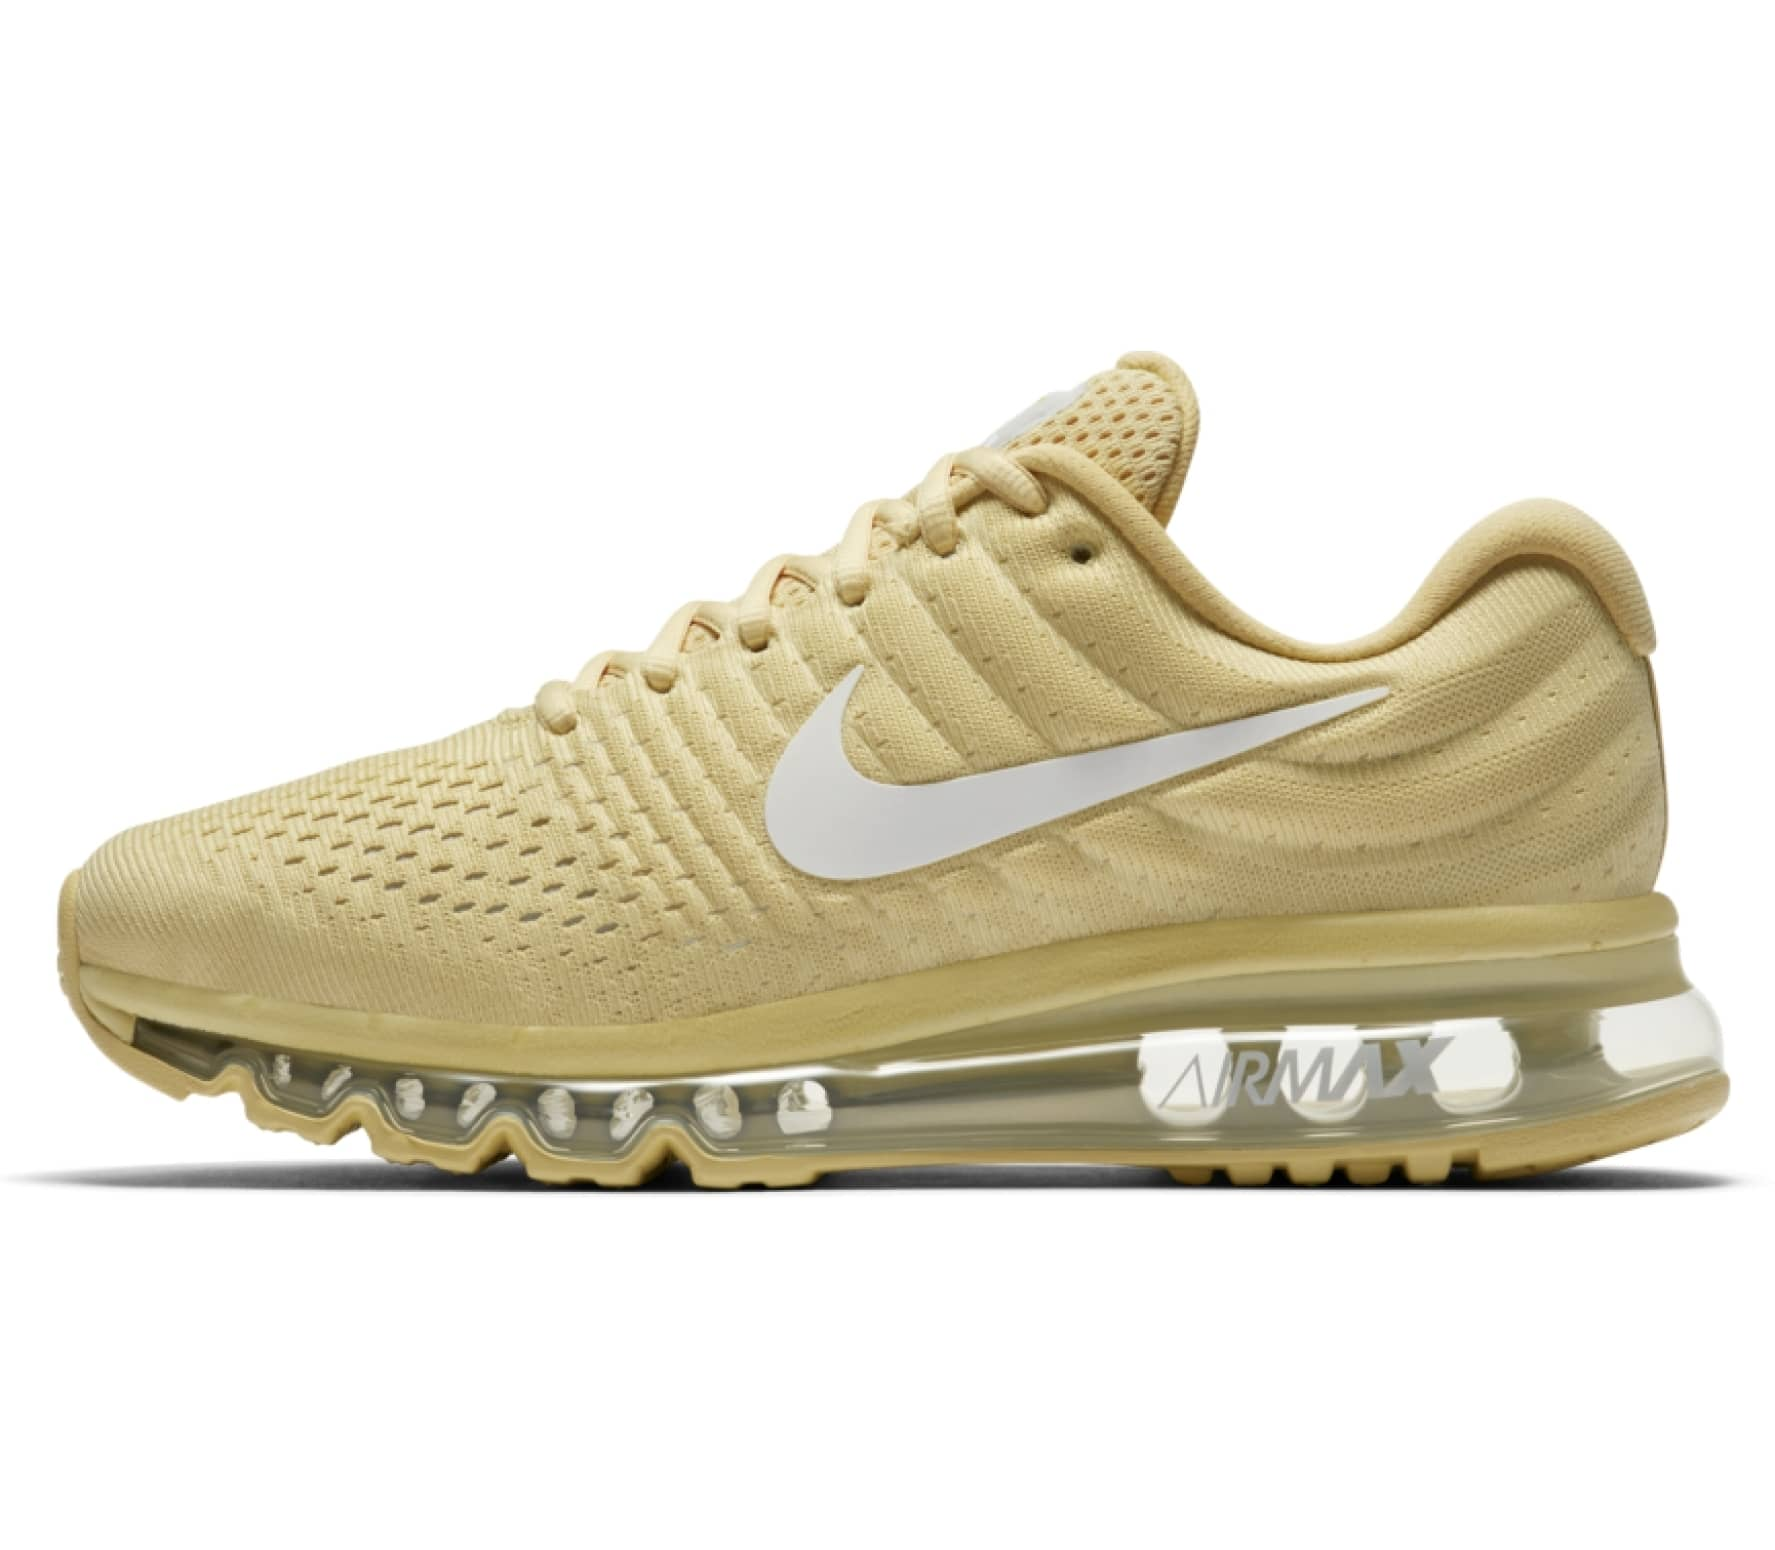 official photos 4b616 0be13 Nike - Air Max 2017 women s running shoes (yellow white)